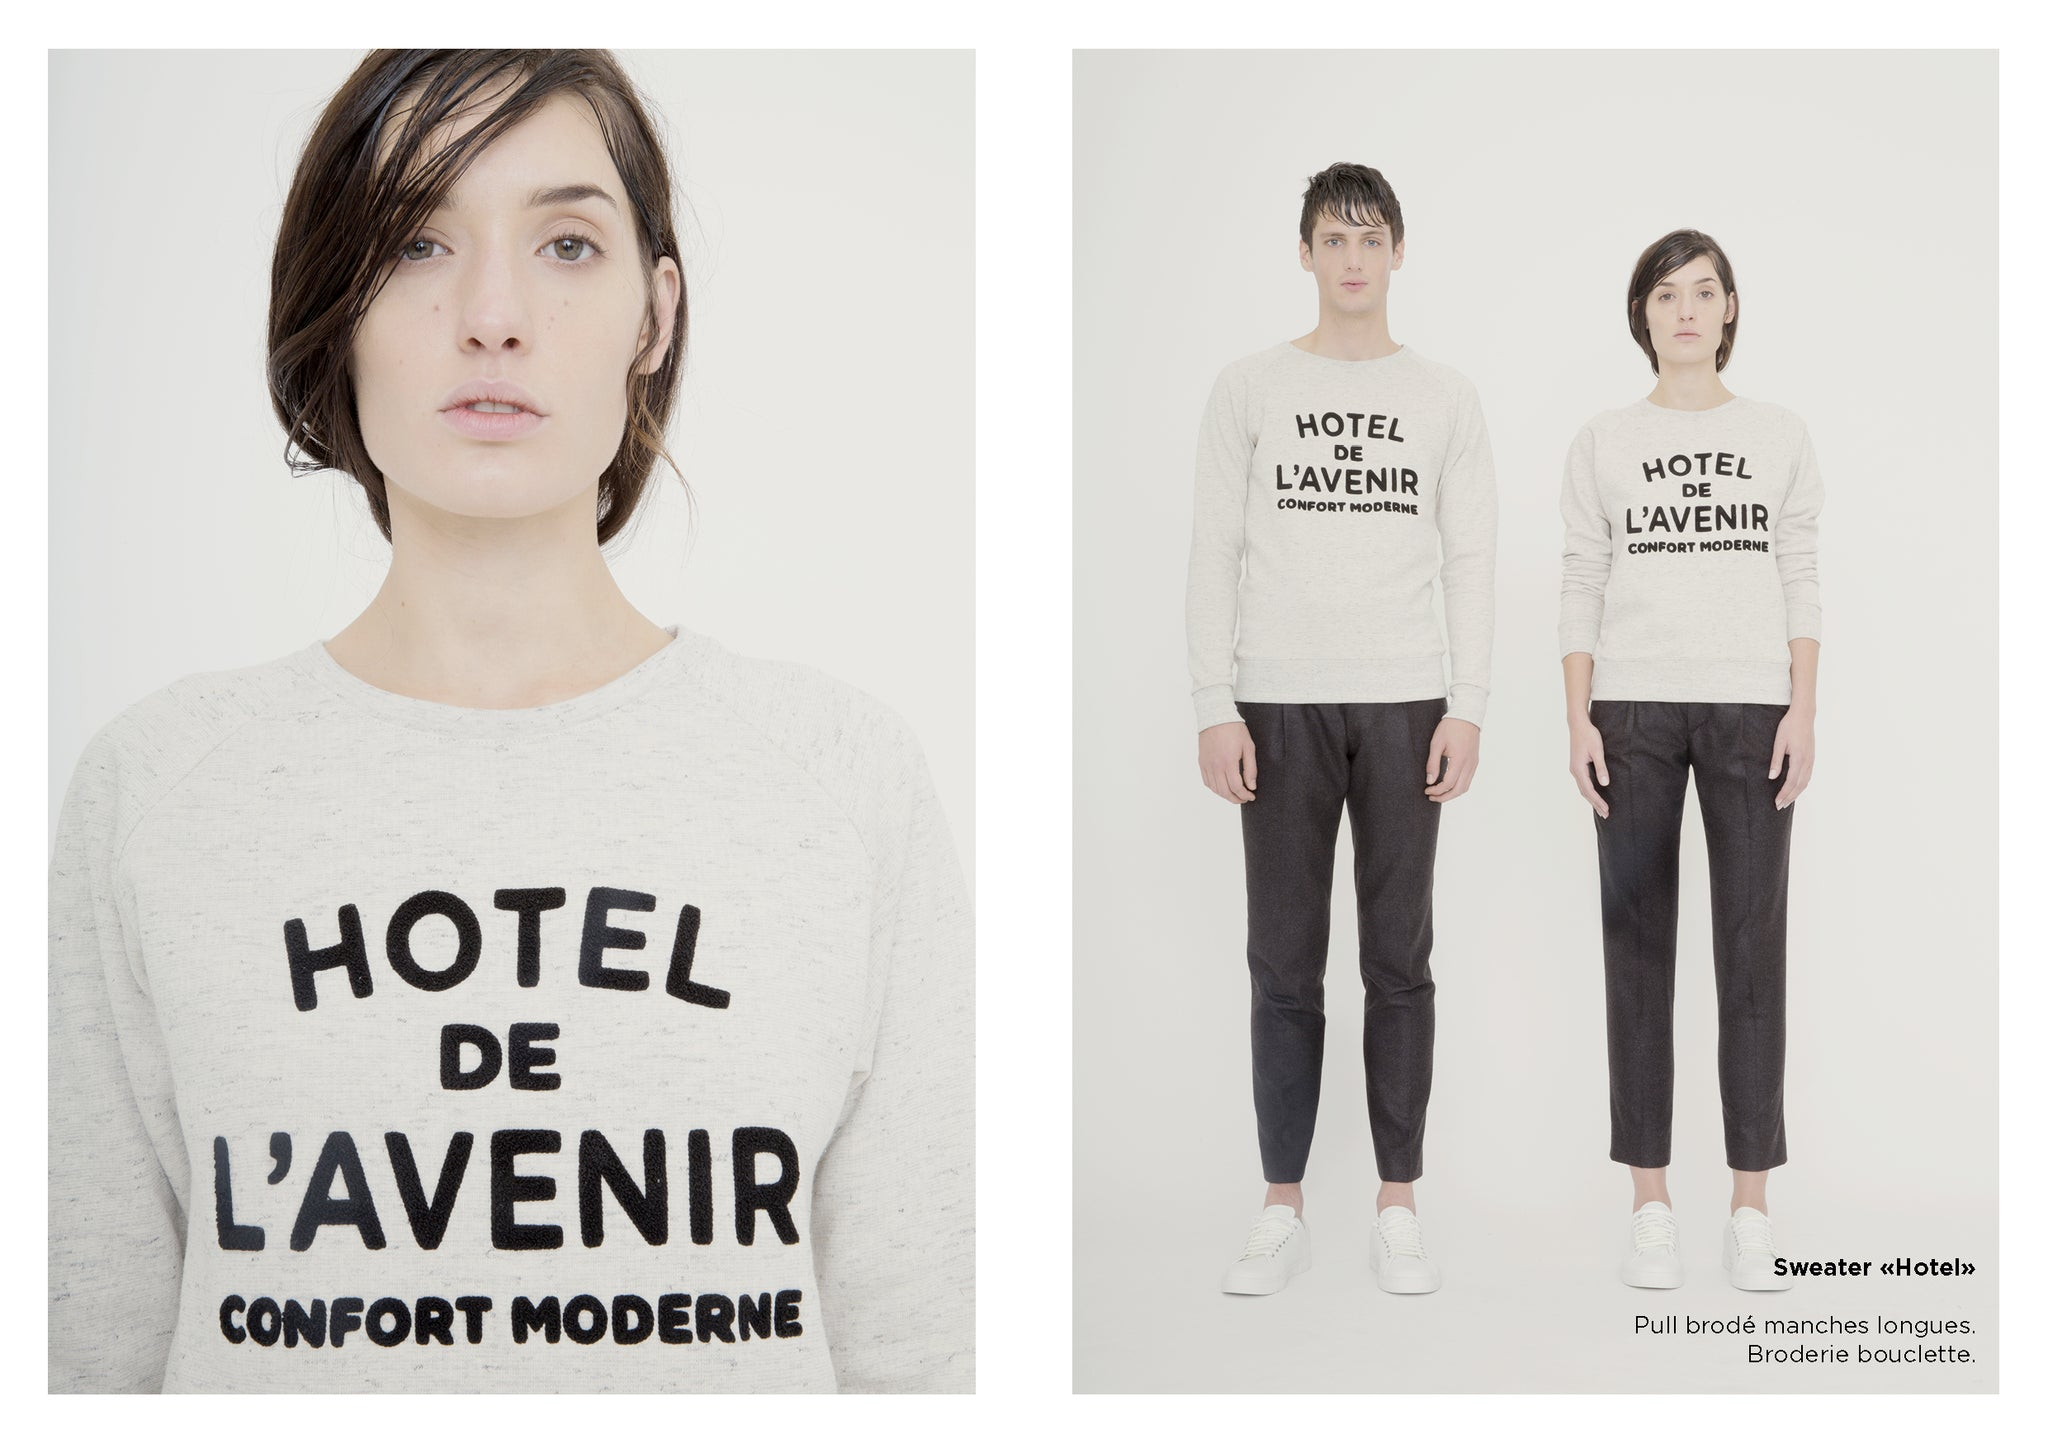 Sweater Hotel de l'avenir AW15 broderie bouclette No Youth Control